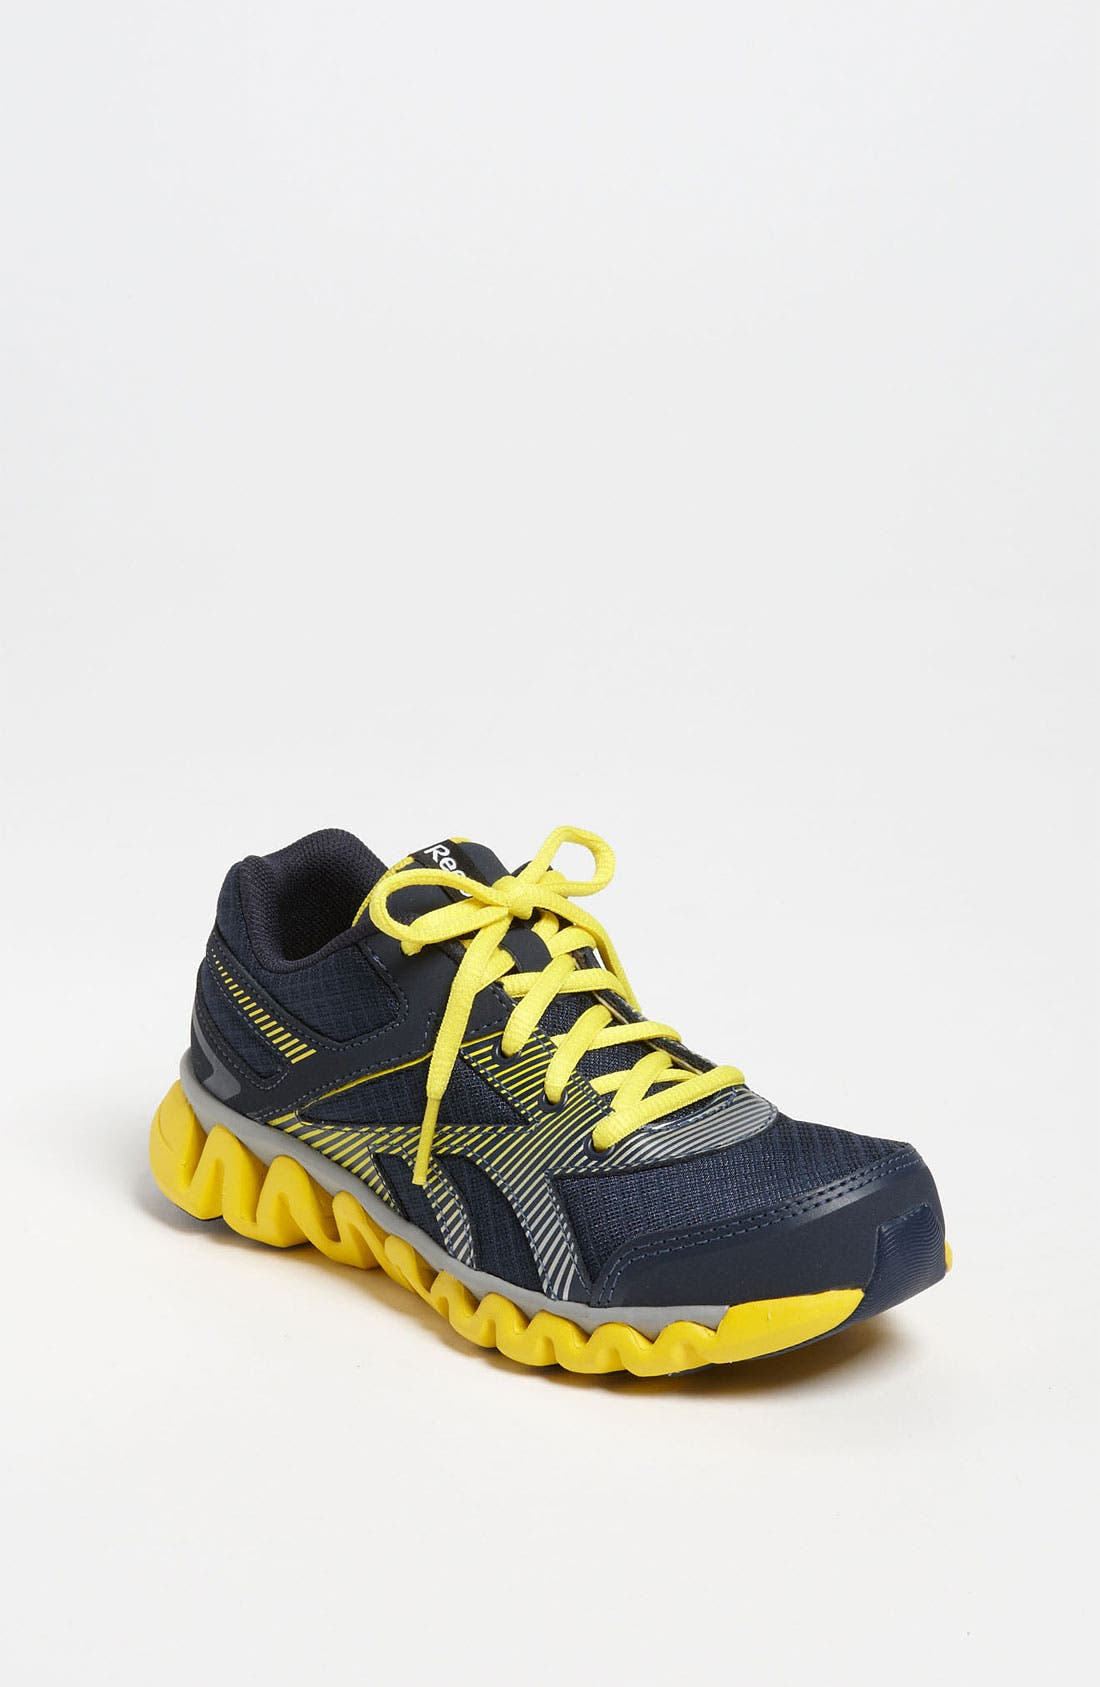 Alternate Image 1 Selected - Reebok 'ZigLite Electrify' Sneaker (Toddler, Little Kid & Big Kid)